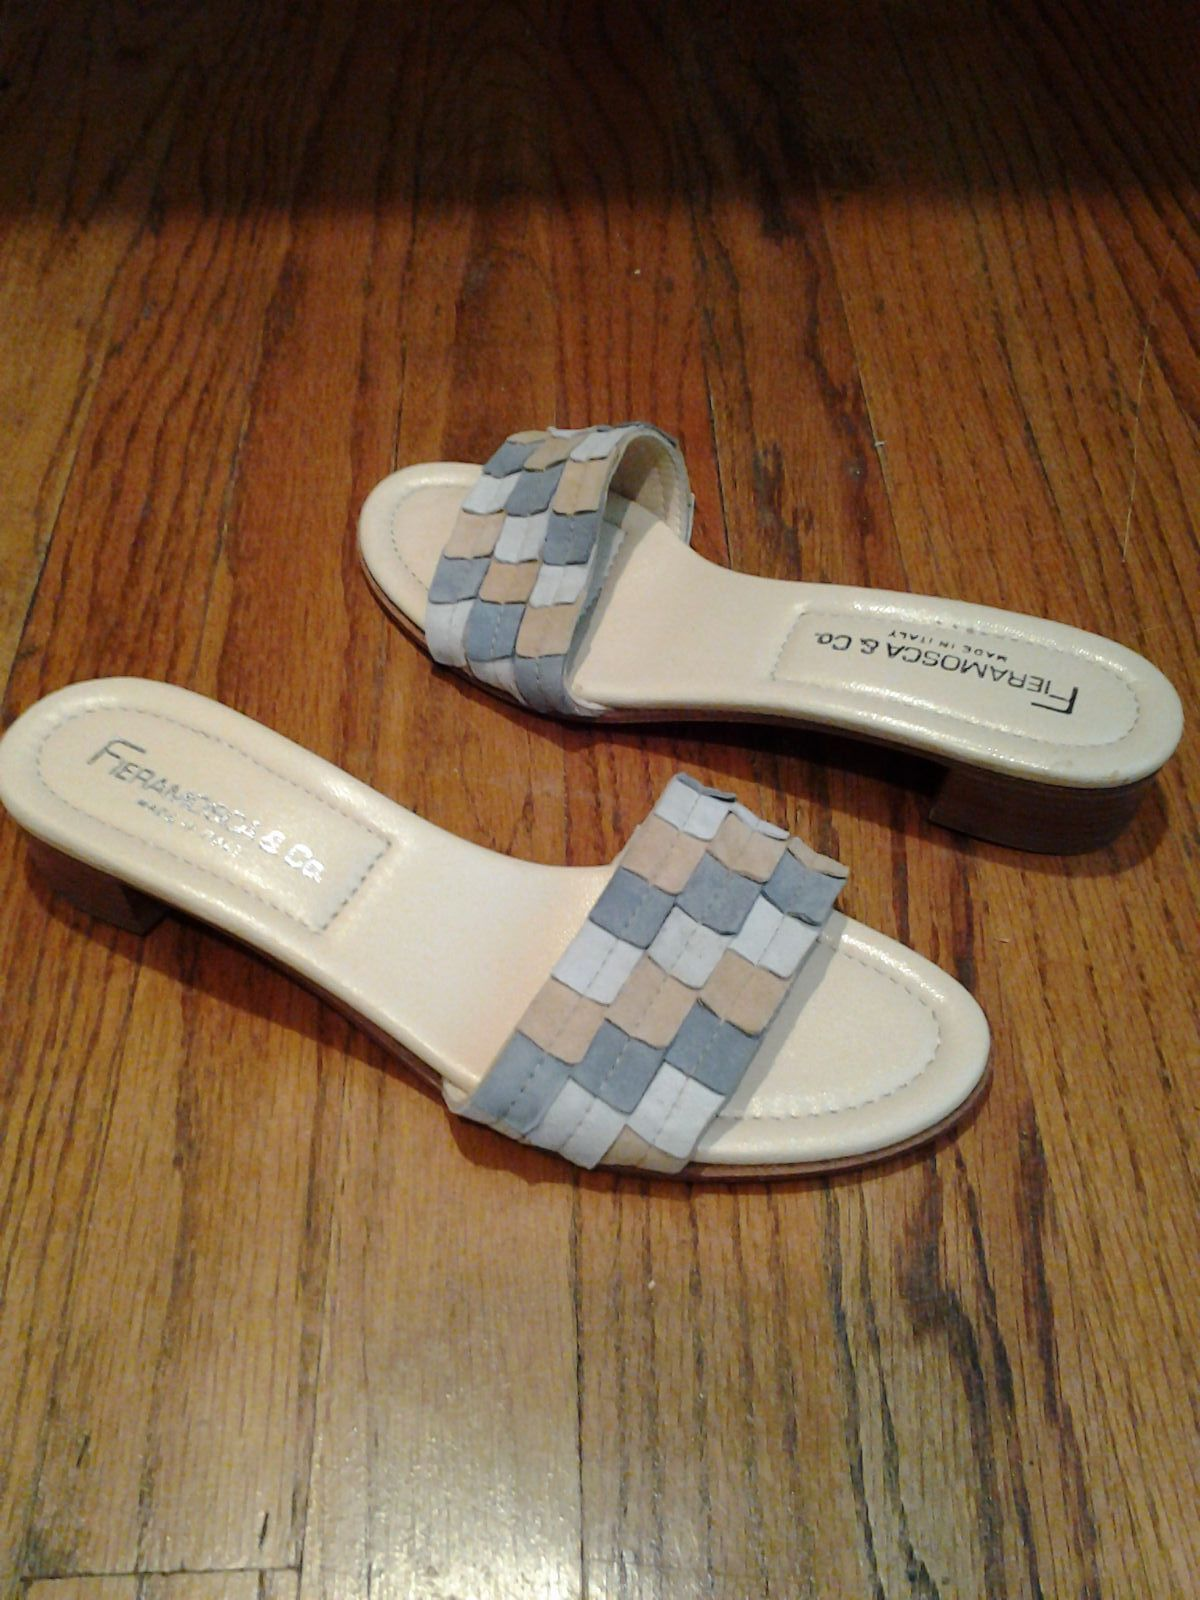 9 & Co. -Orlando Wedge Sandals , Size : 5 1/2  M[B] , color: White& Gold